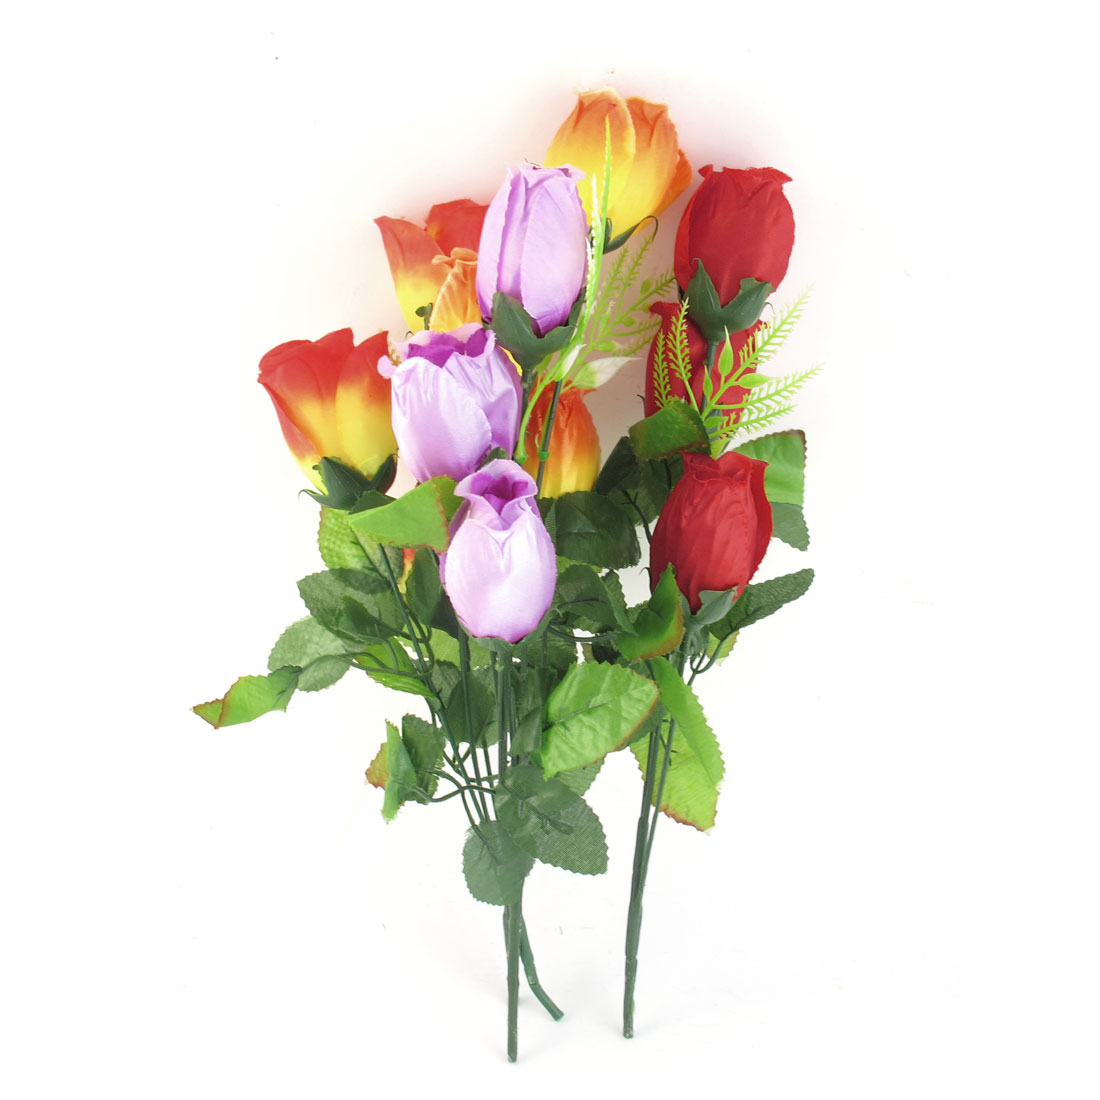 4 Pcs Artificial Simulation Flower Bouquet Wedding Party Ornament